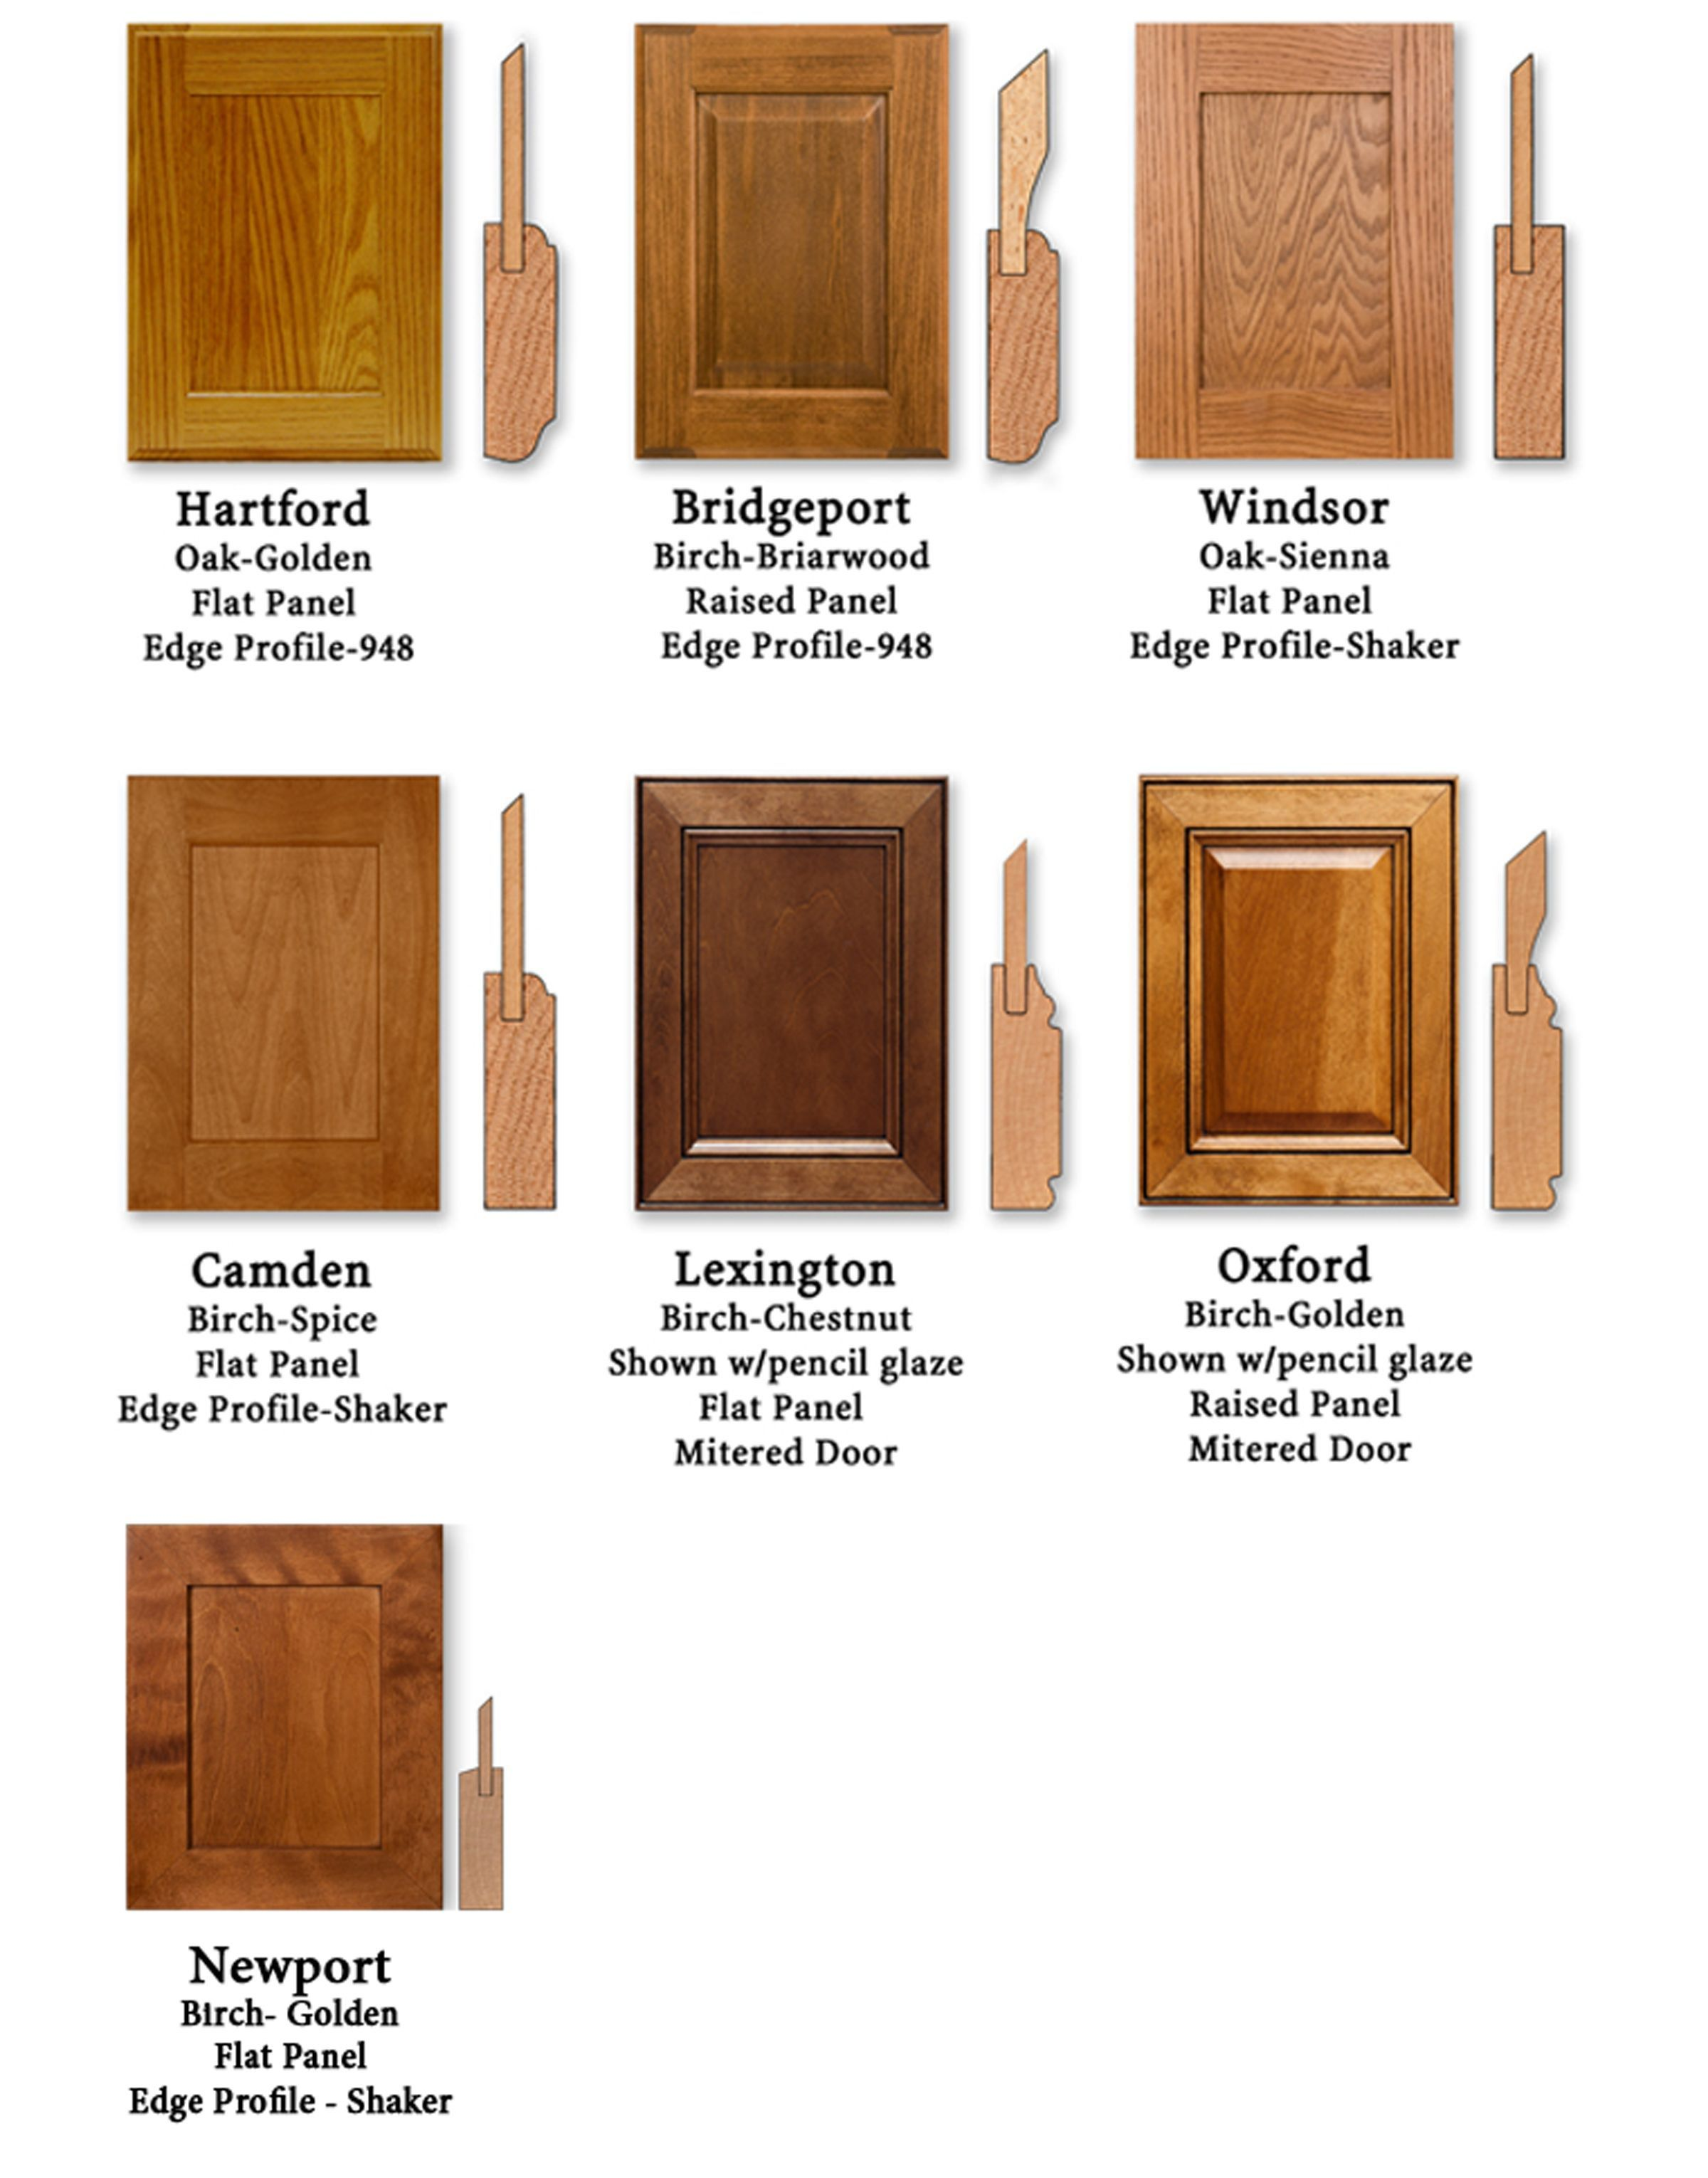 Flat Panel Cabinet Doors 2020 Cabinet Doors Cabinet Door Styles Types Of Kitchen Cabinets